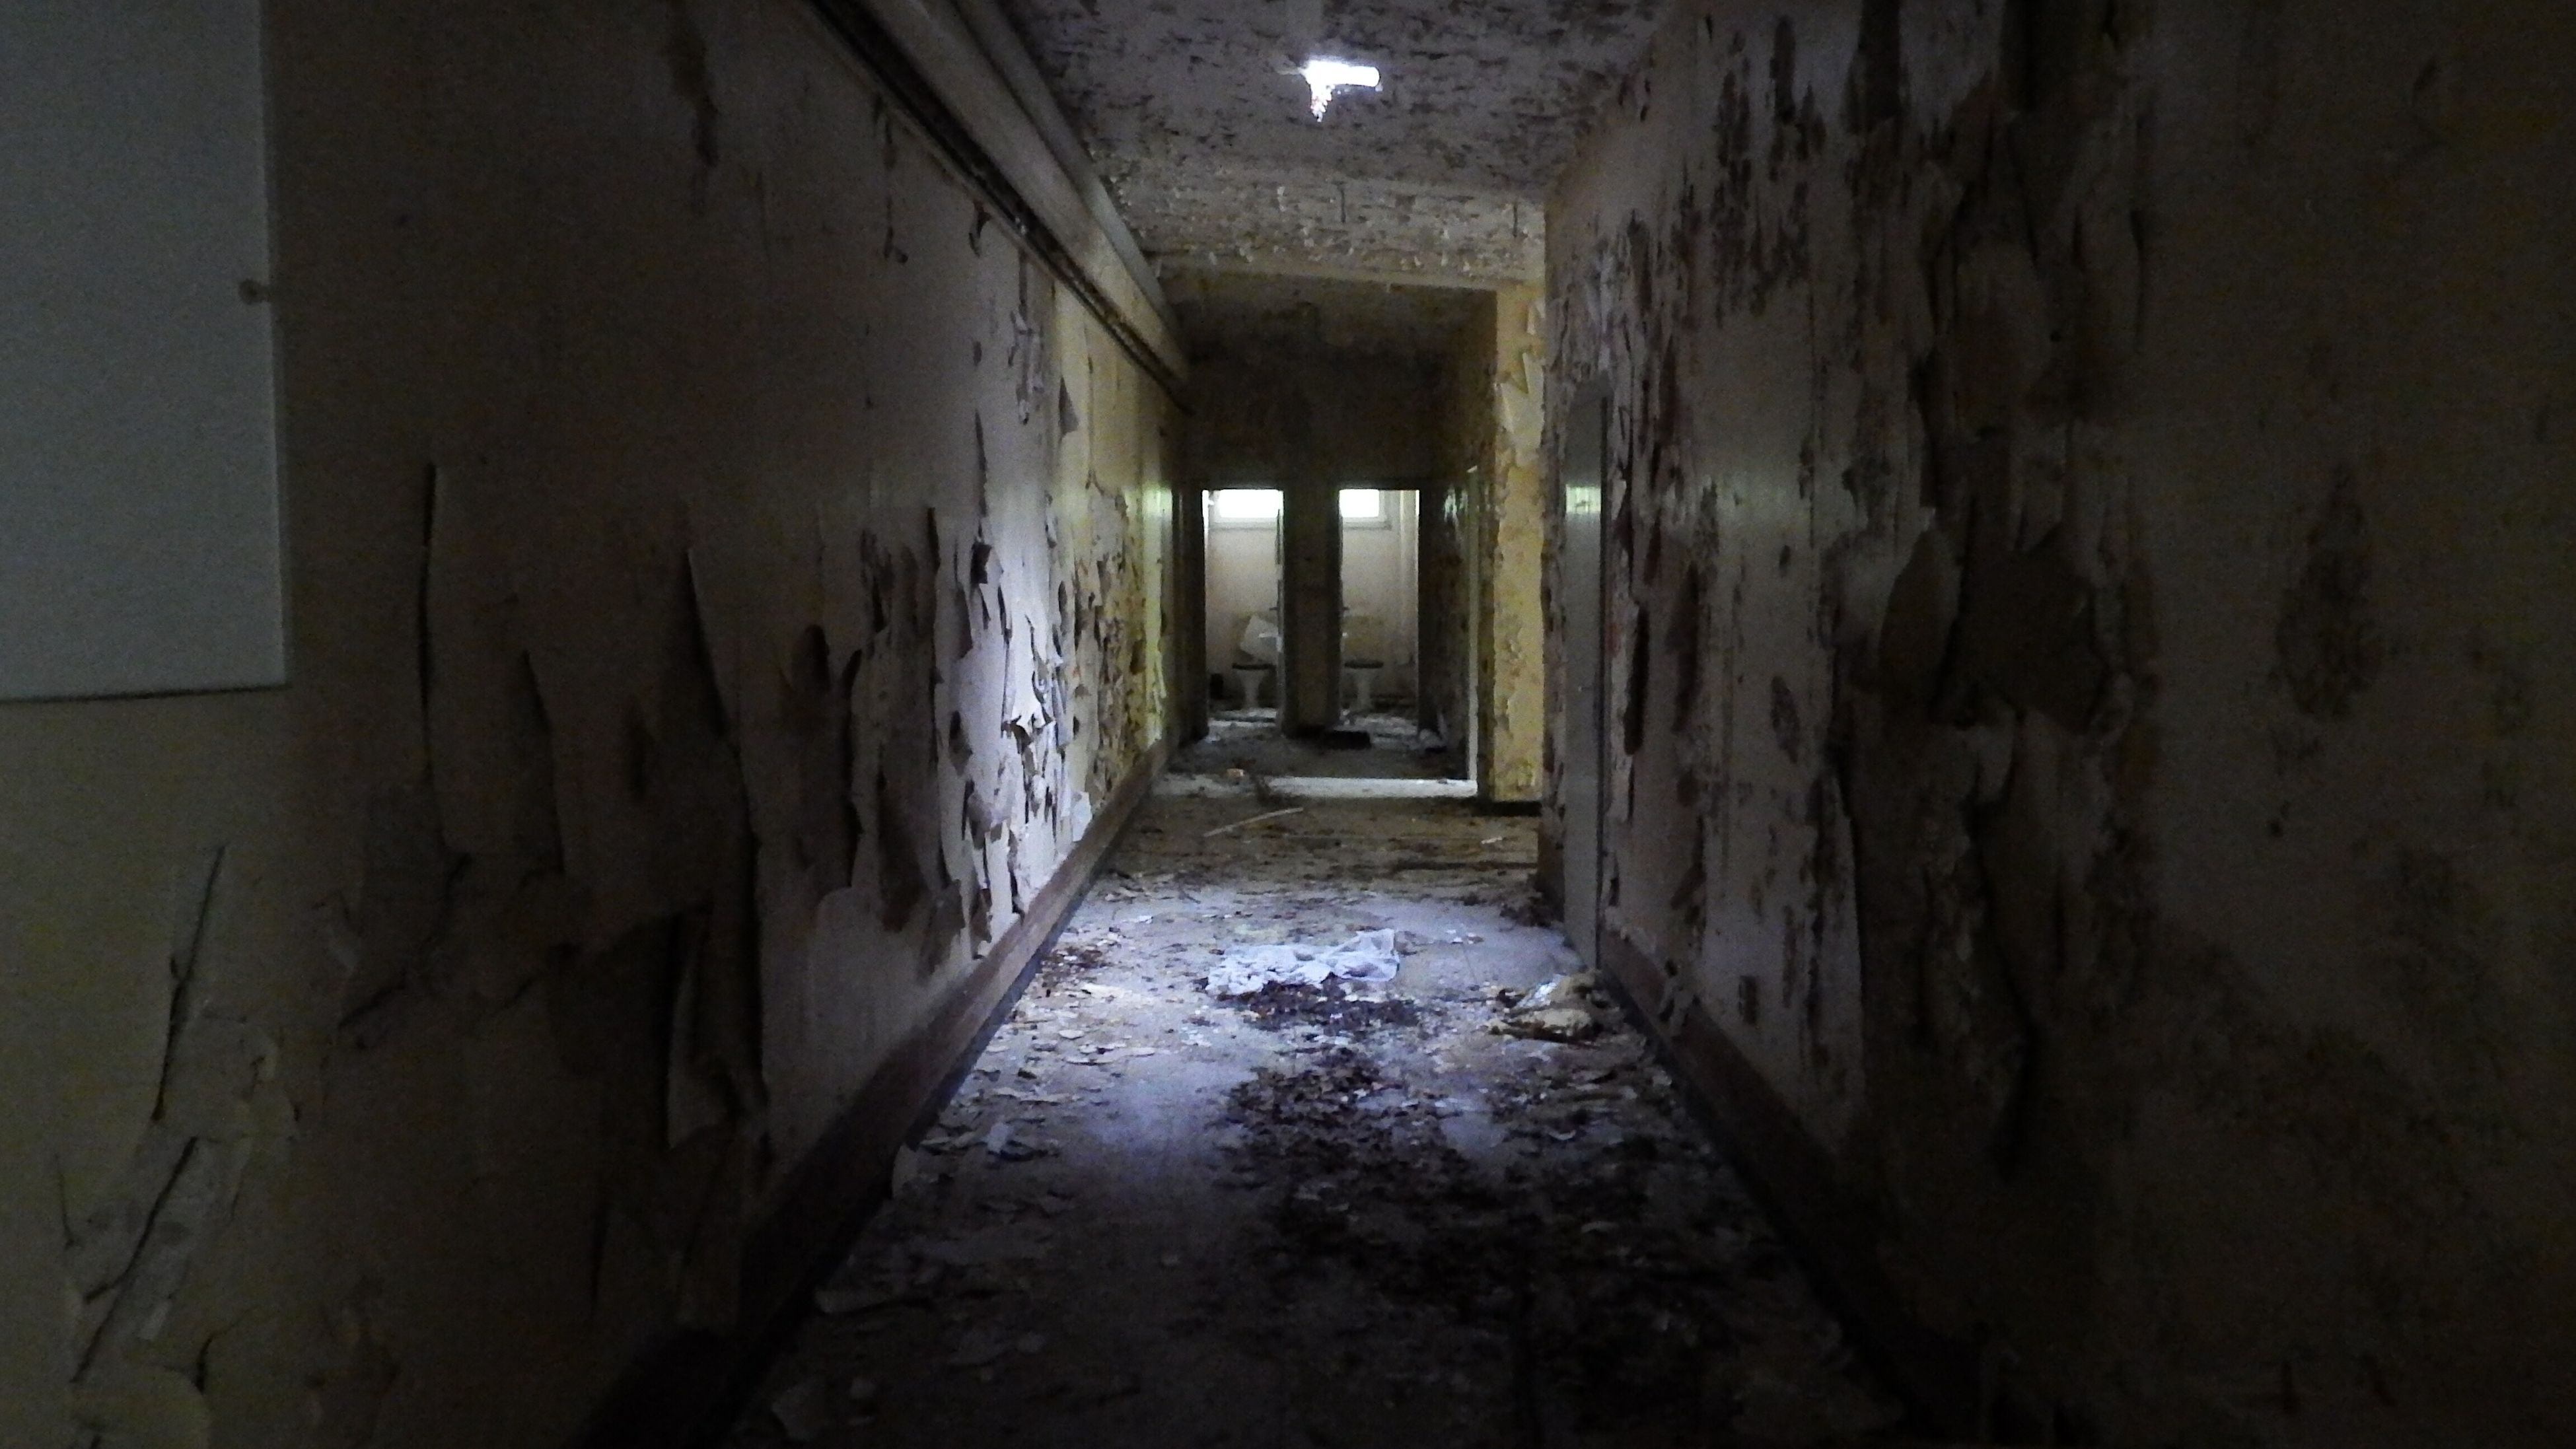 indoors, architecture, built structure, abandoned, corridor, old, wall - building feature, damaged, building, deterioration, the way forward, narrow, run-down, obsolete, weathered, wall, interior, tunnel, empty, ceiling